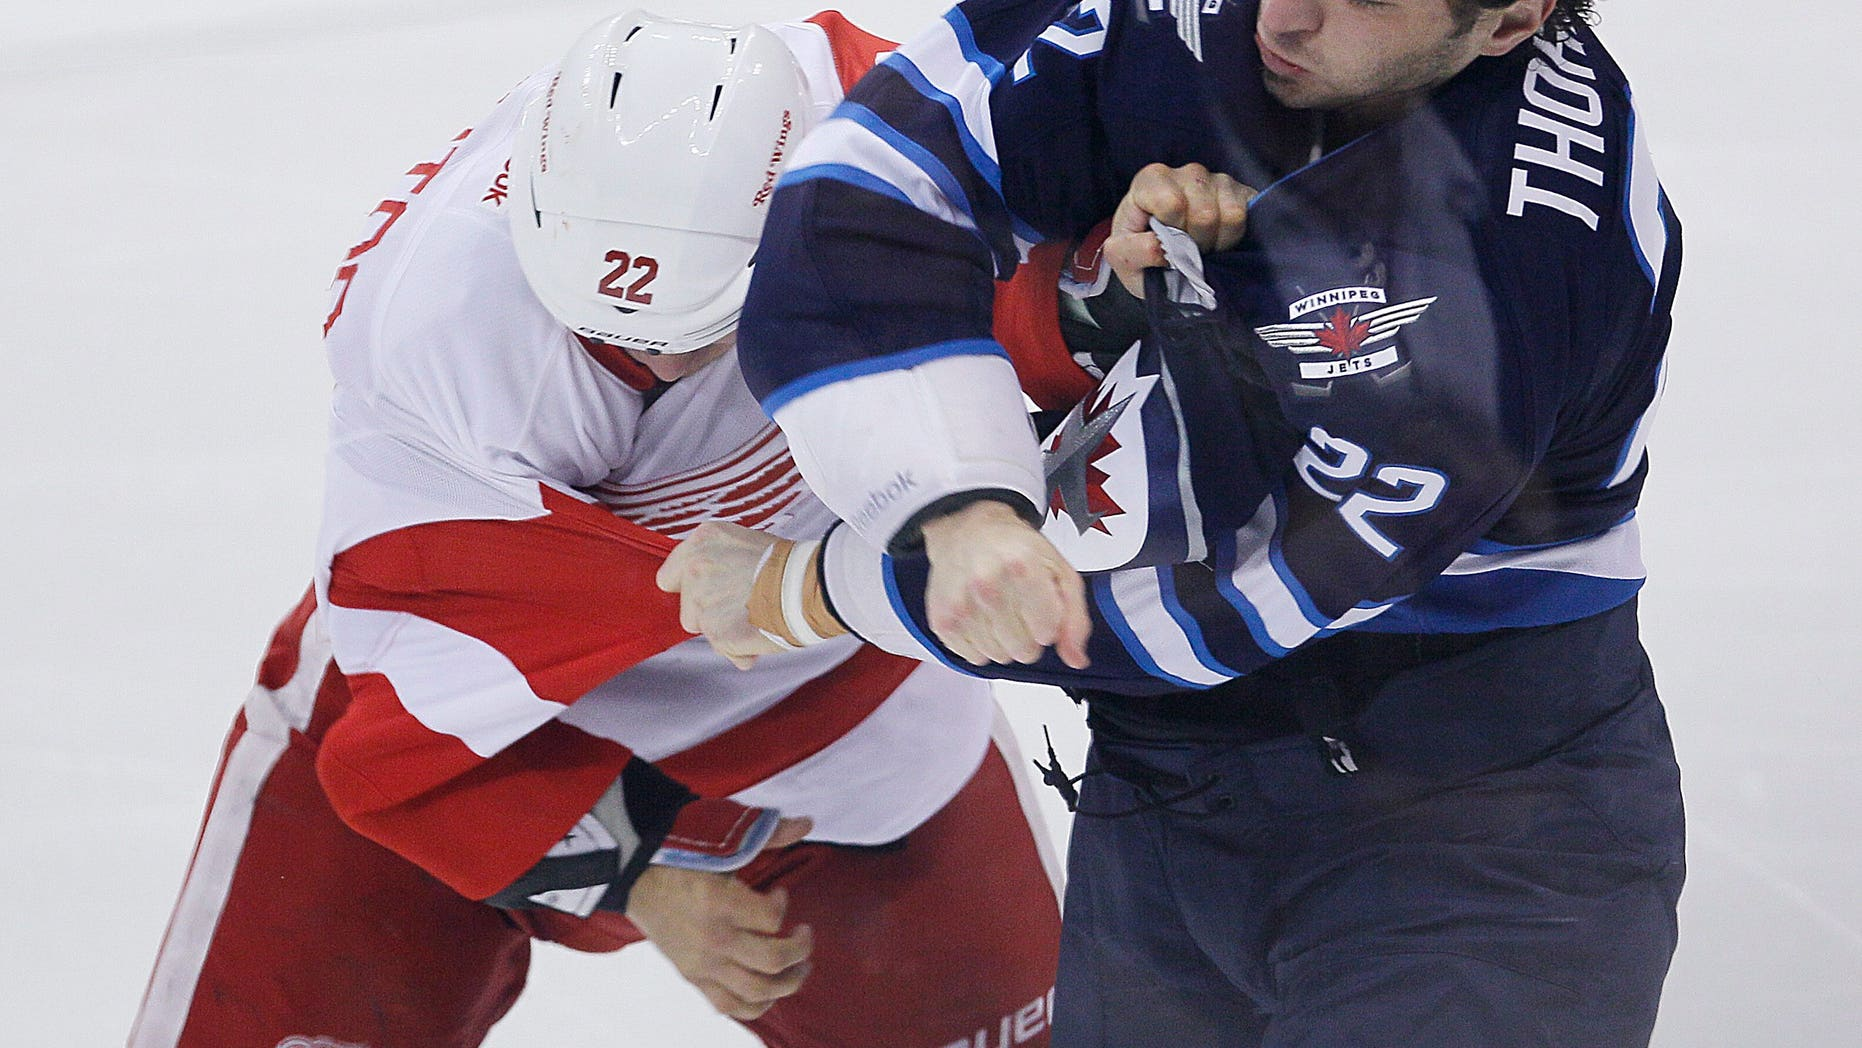 Detroit Red Wings' Jordin Tootoo (22) and Winnipeg Jets' Chris Thorburn (22) scrap during first period NHL action in Winnipeg on Monday, Nov. 4, 2013. (AP Photo/The Canadian Press, John Woods)